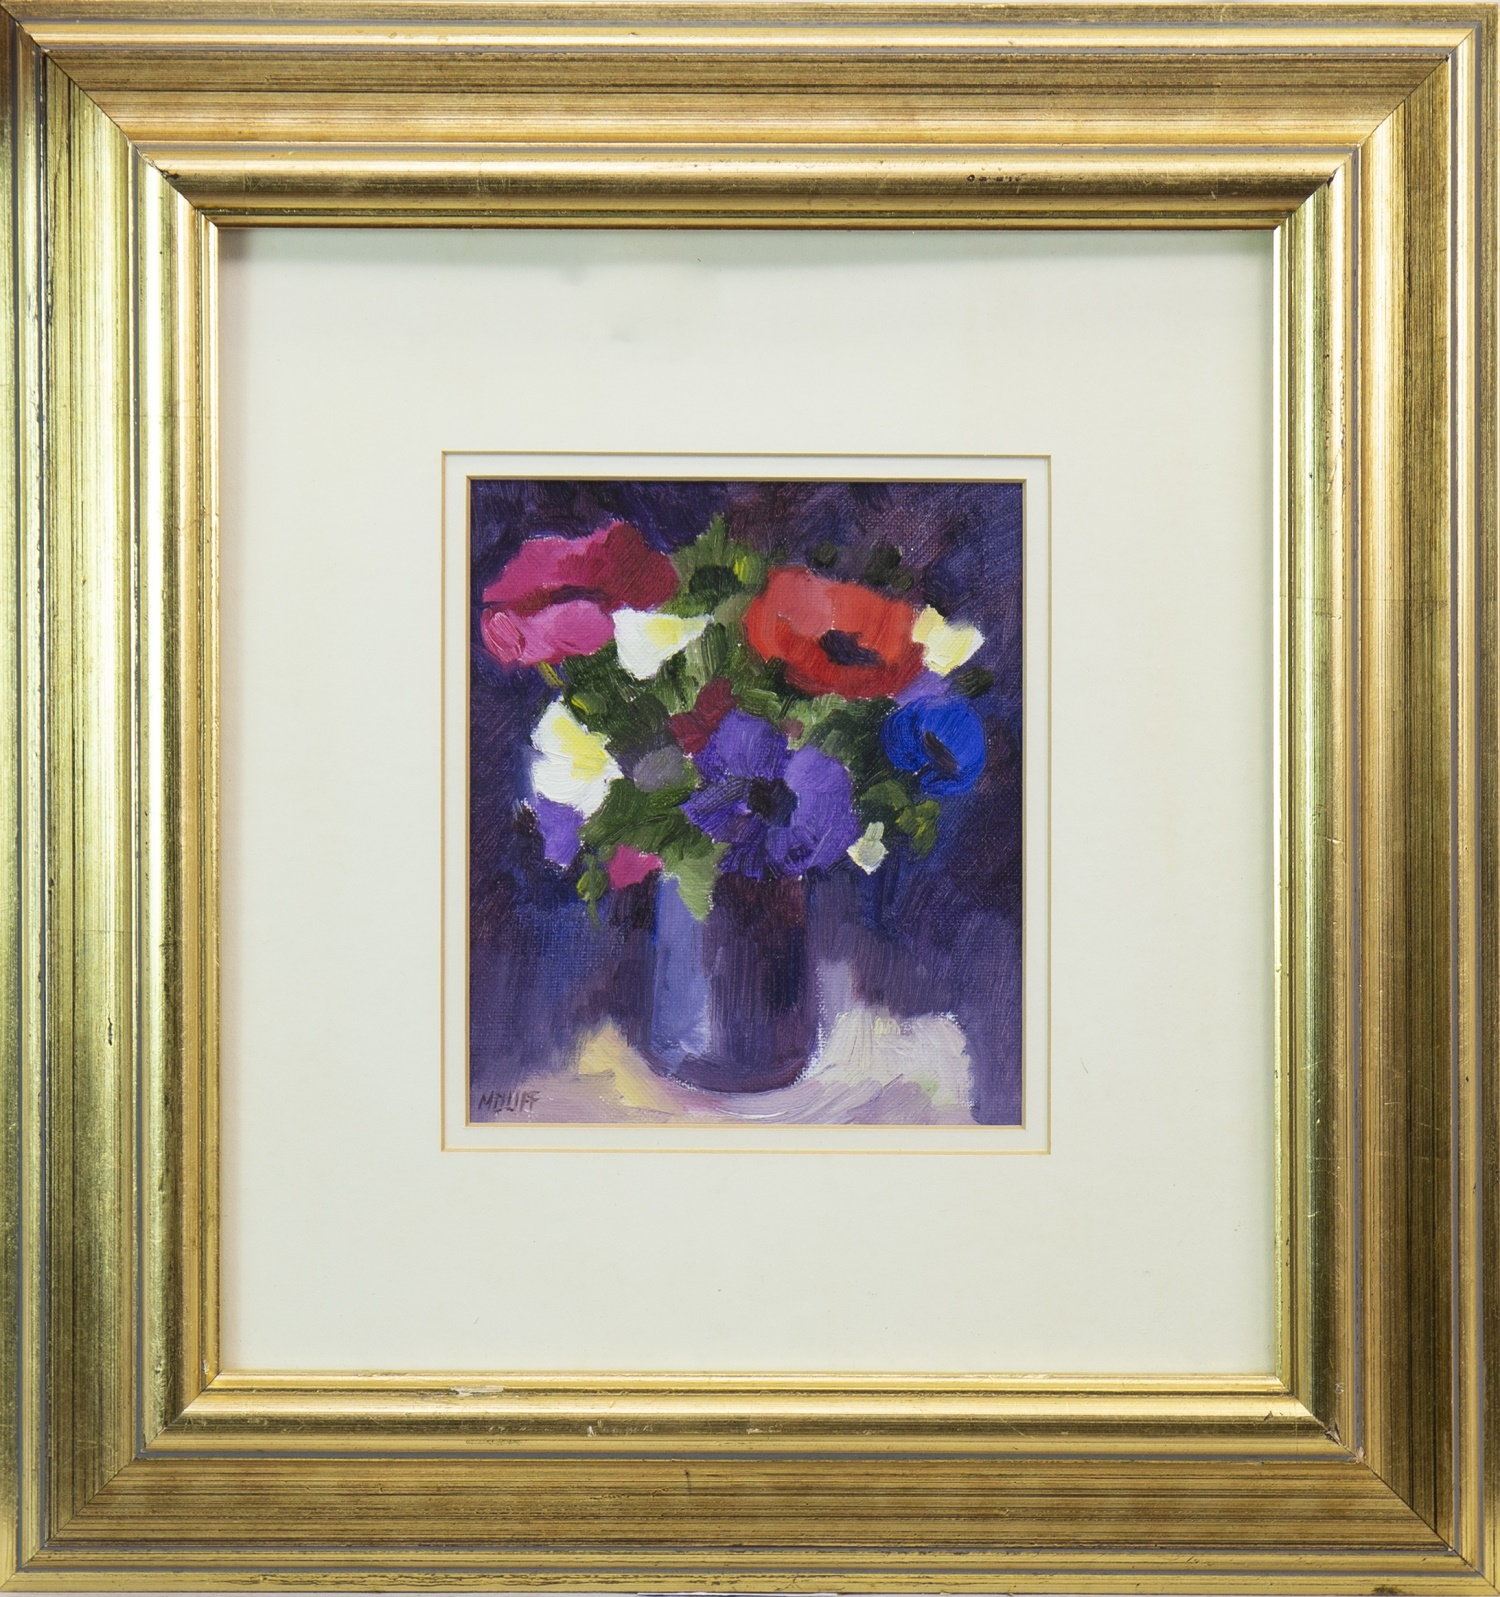 Lot 535 - A PAIR OF FLORAL STILL LIFES, BY MARGARET DUFF